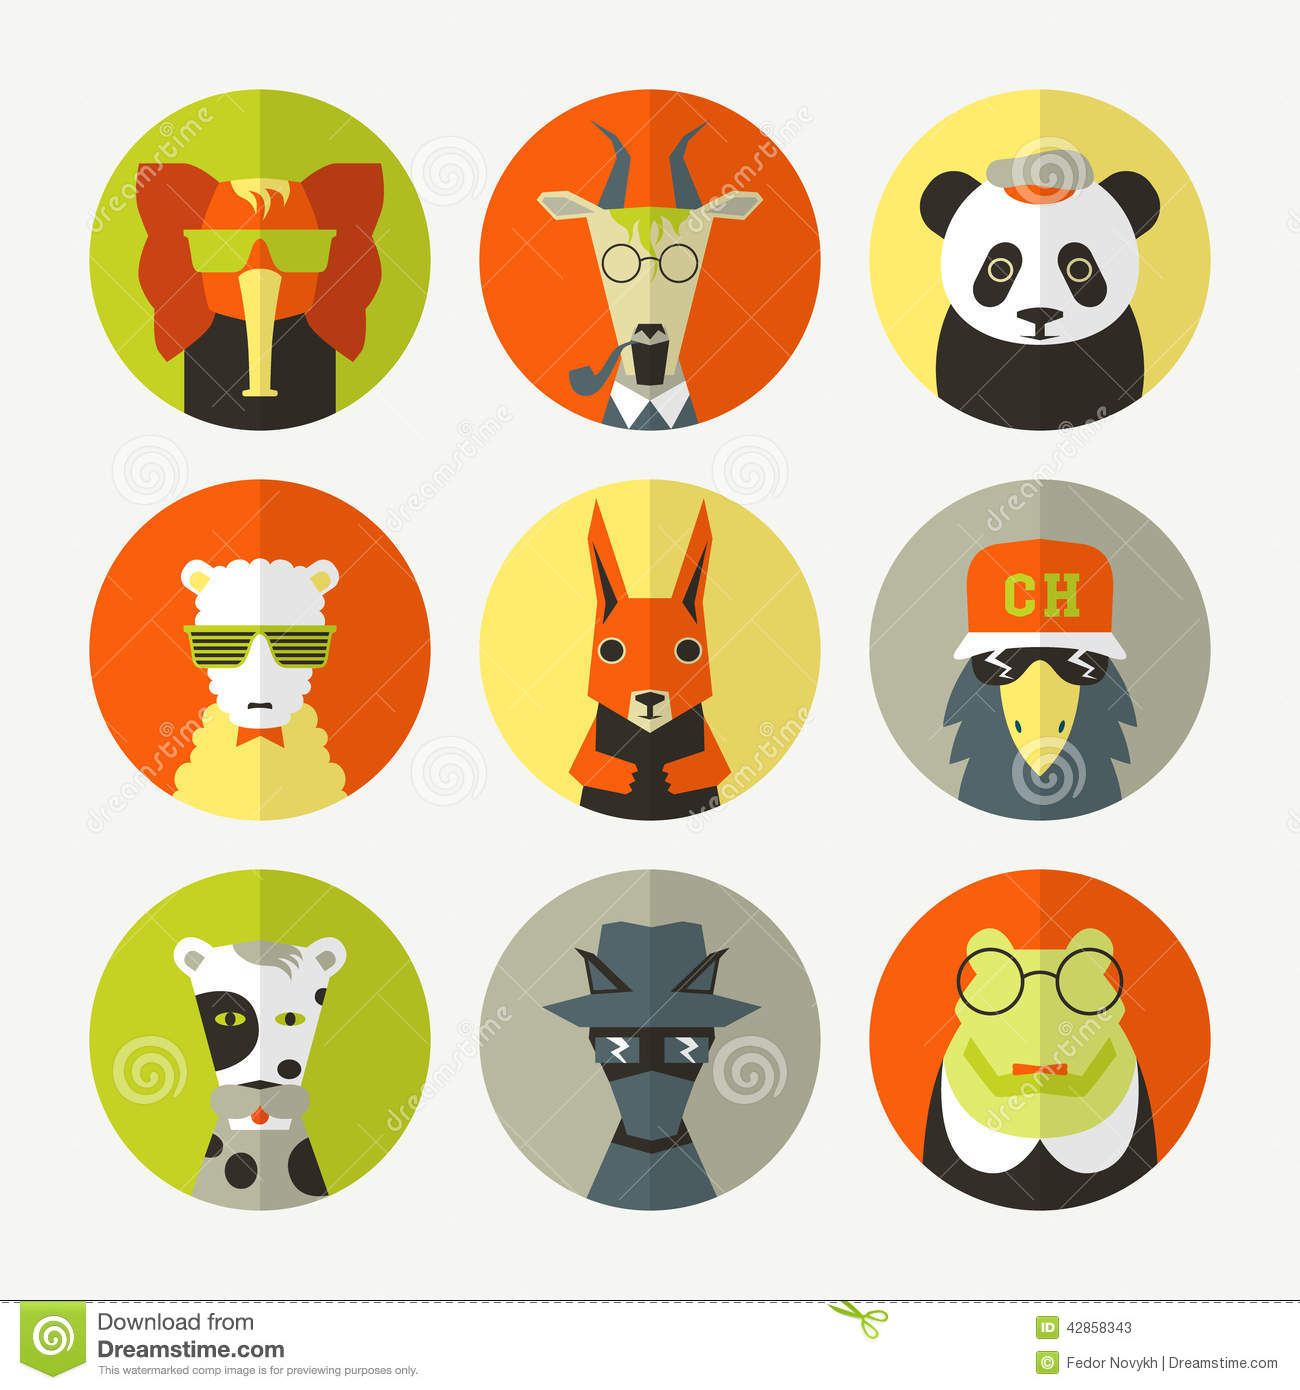 Avatar 2 Animals: Set Of Stylized Animal Avatar Stock Vector